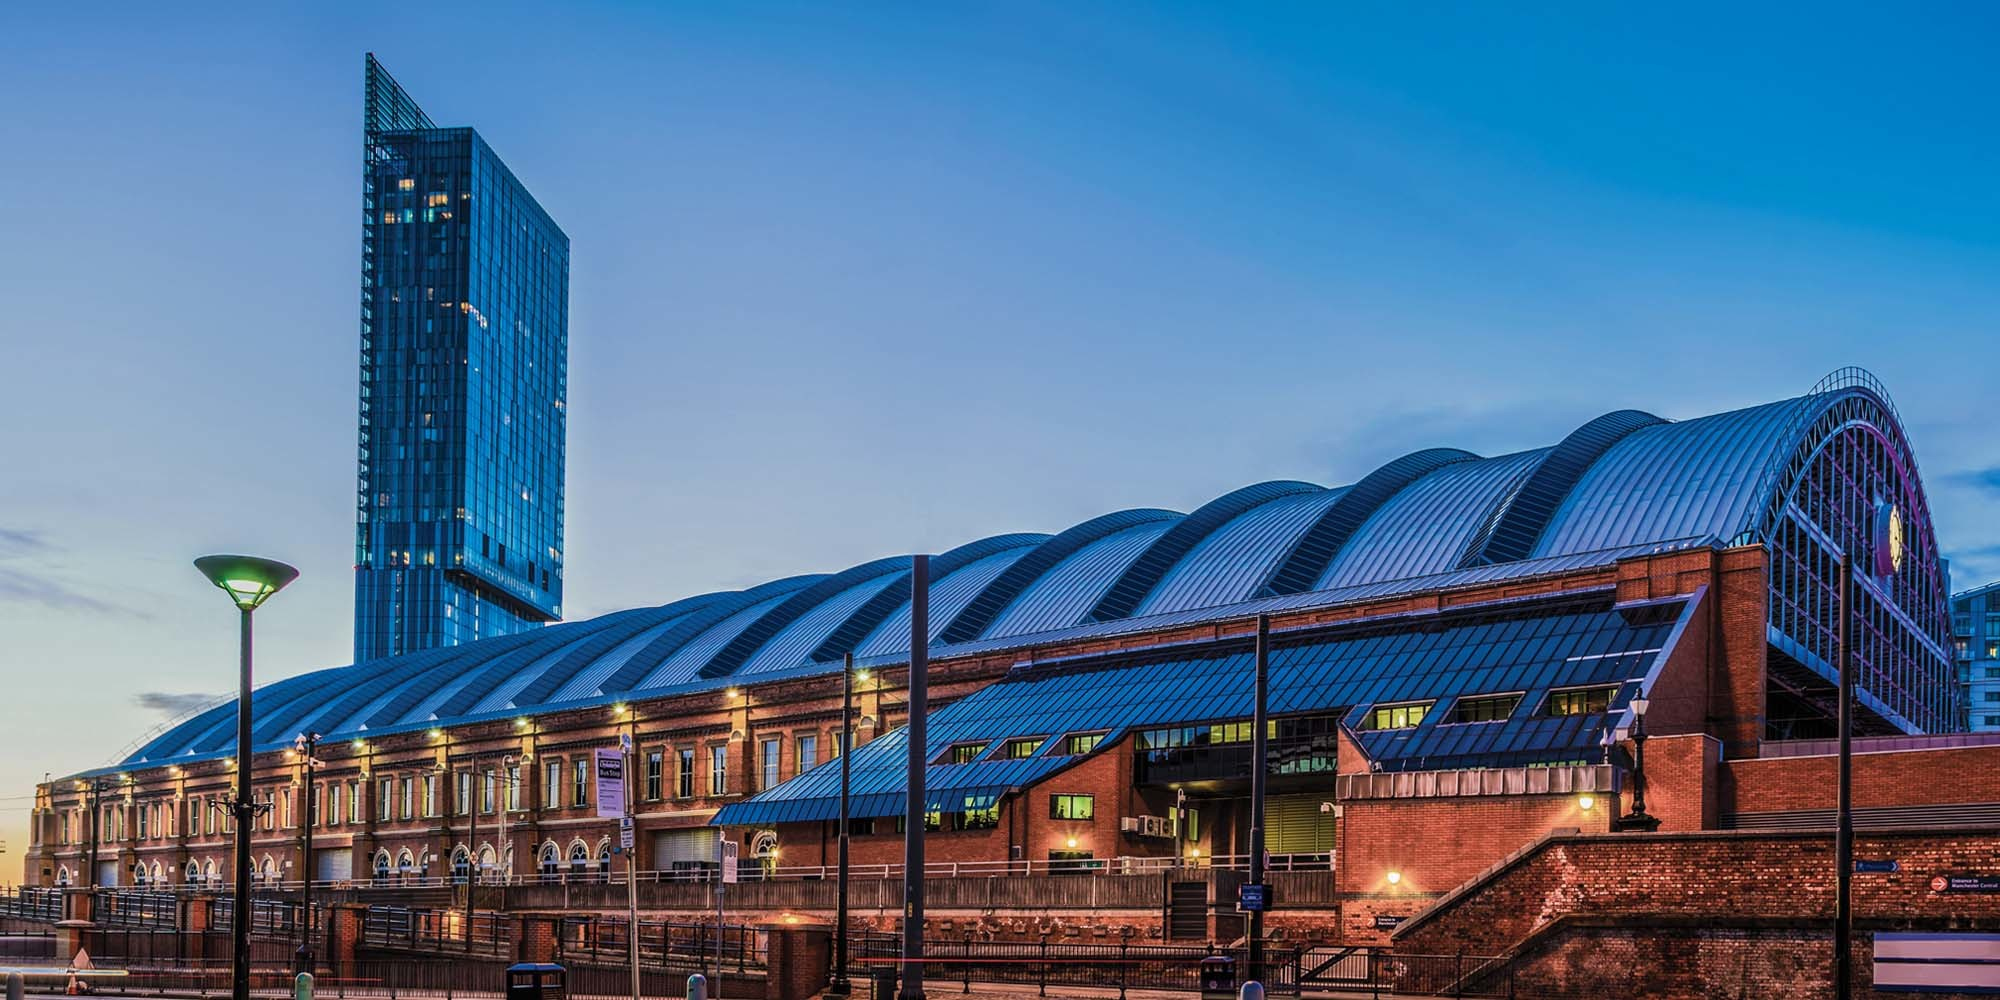 Manchester Central and the Beetham Tower